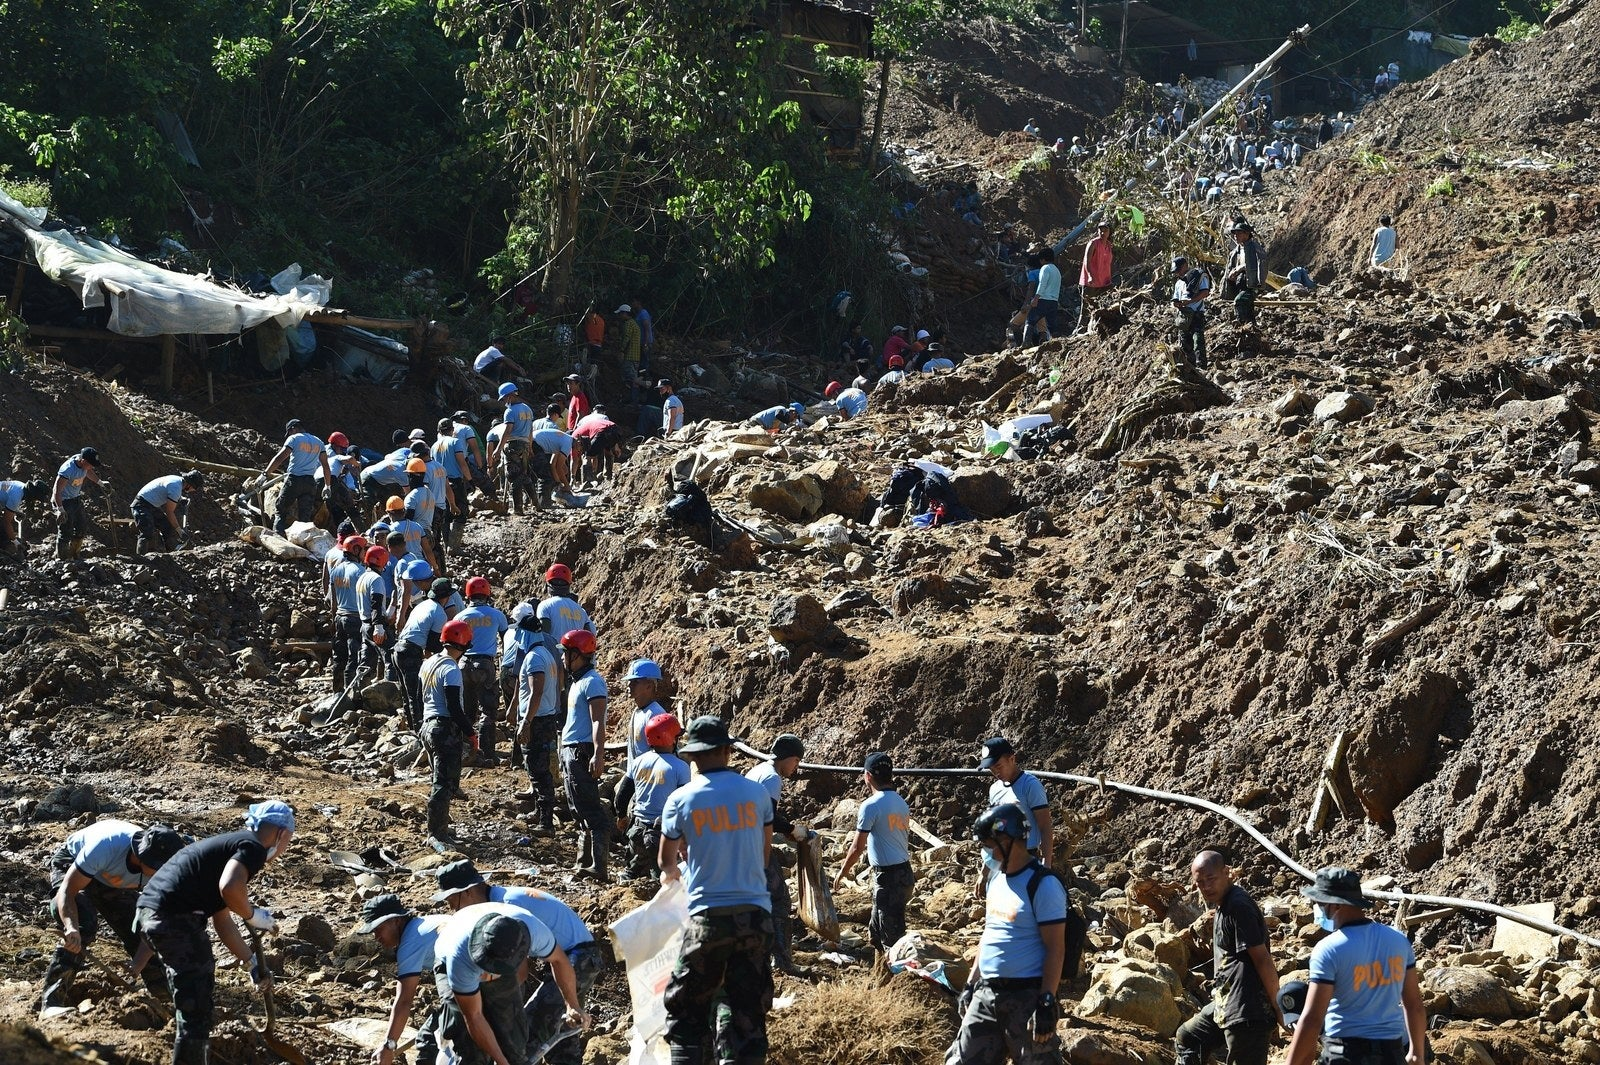 Rescuers dig at a landslide site where dozens of residents are believed to have been buried during heavy rains at the height of Typhoon Mangkhut in Itogon, Benguet province, the Philippines, on Sept. 18.